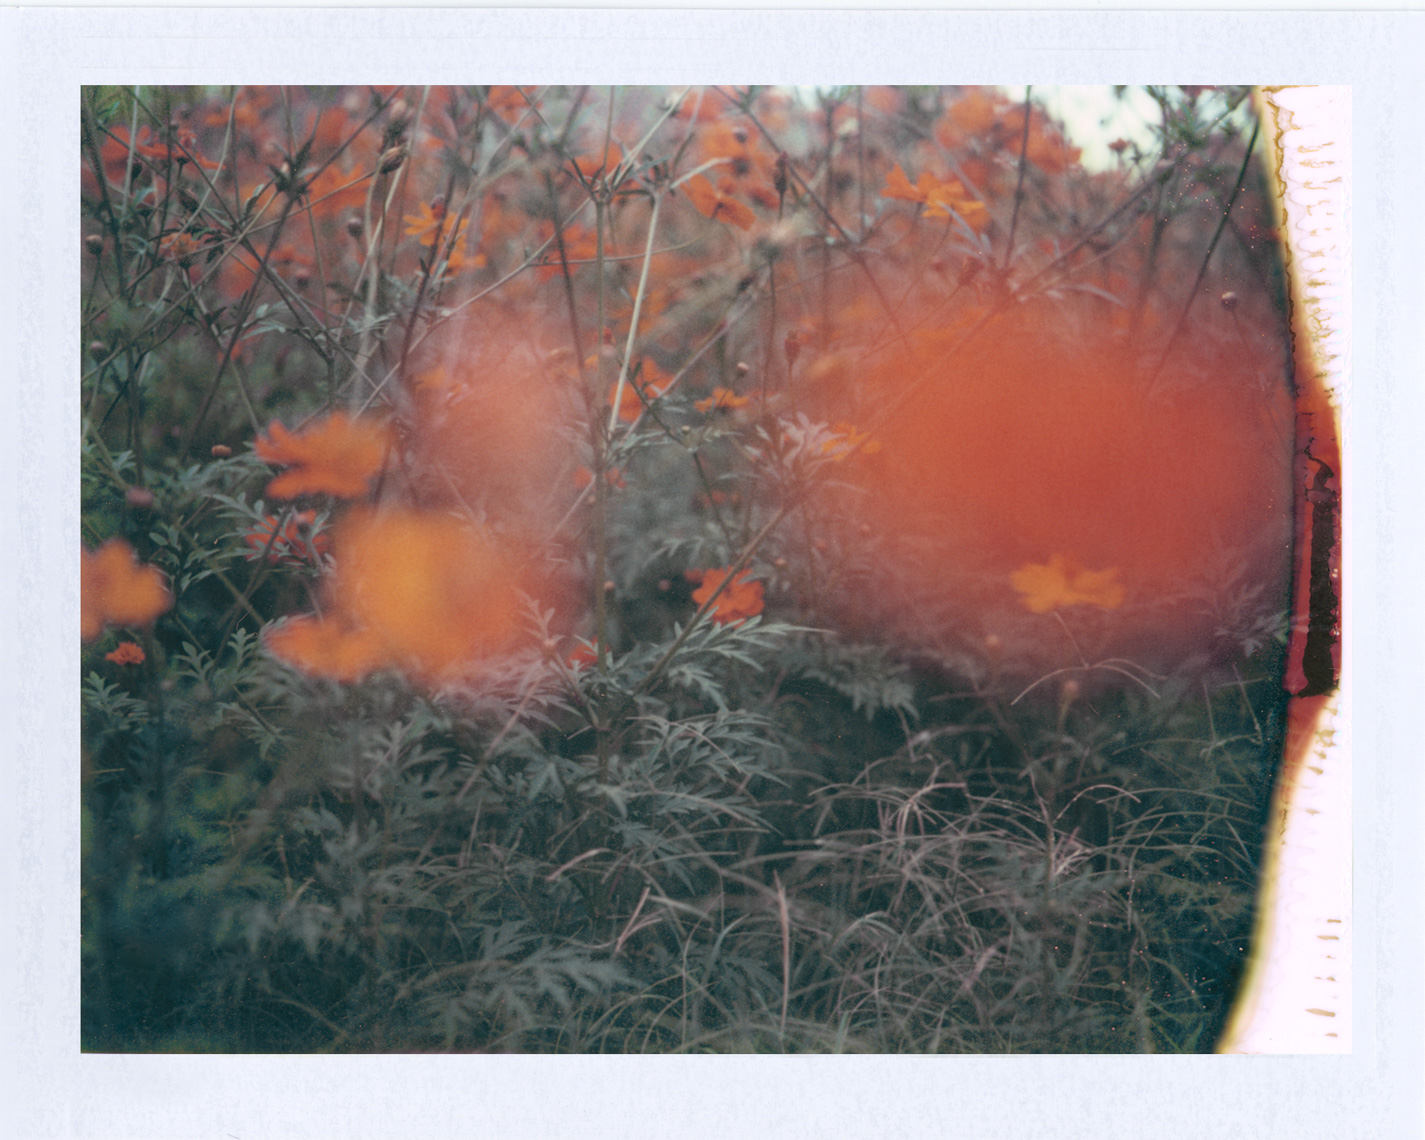 Orange Texas wildflowers | Polaroid Photographers